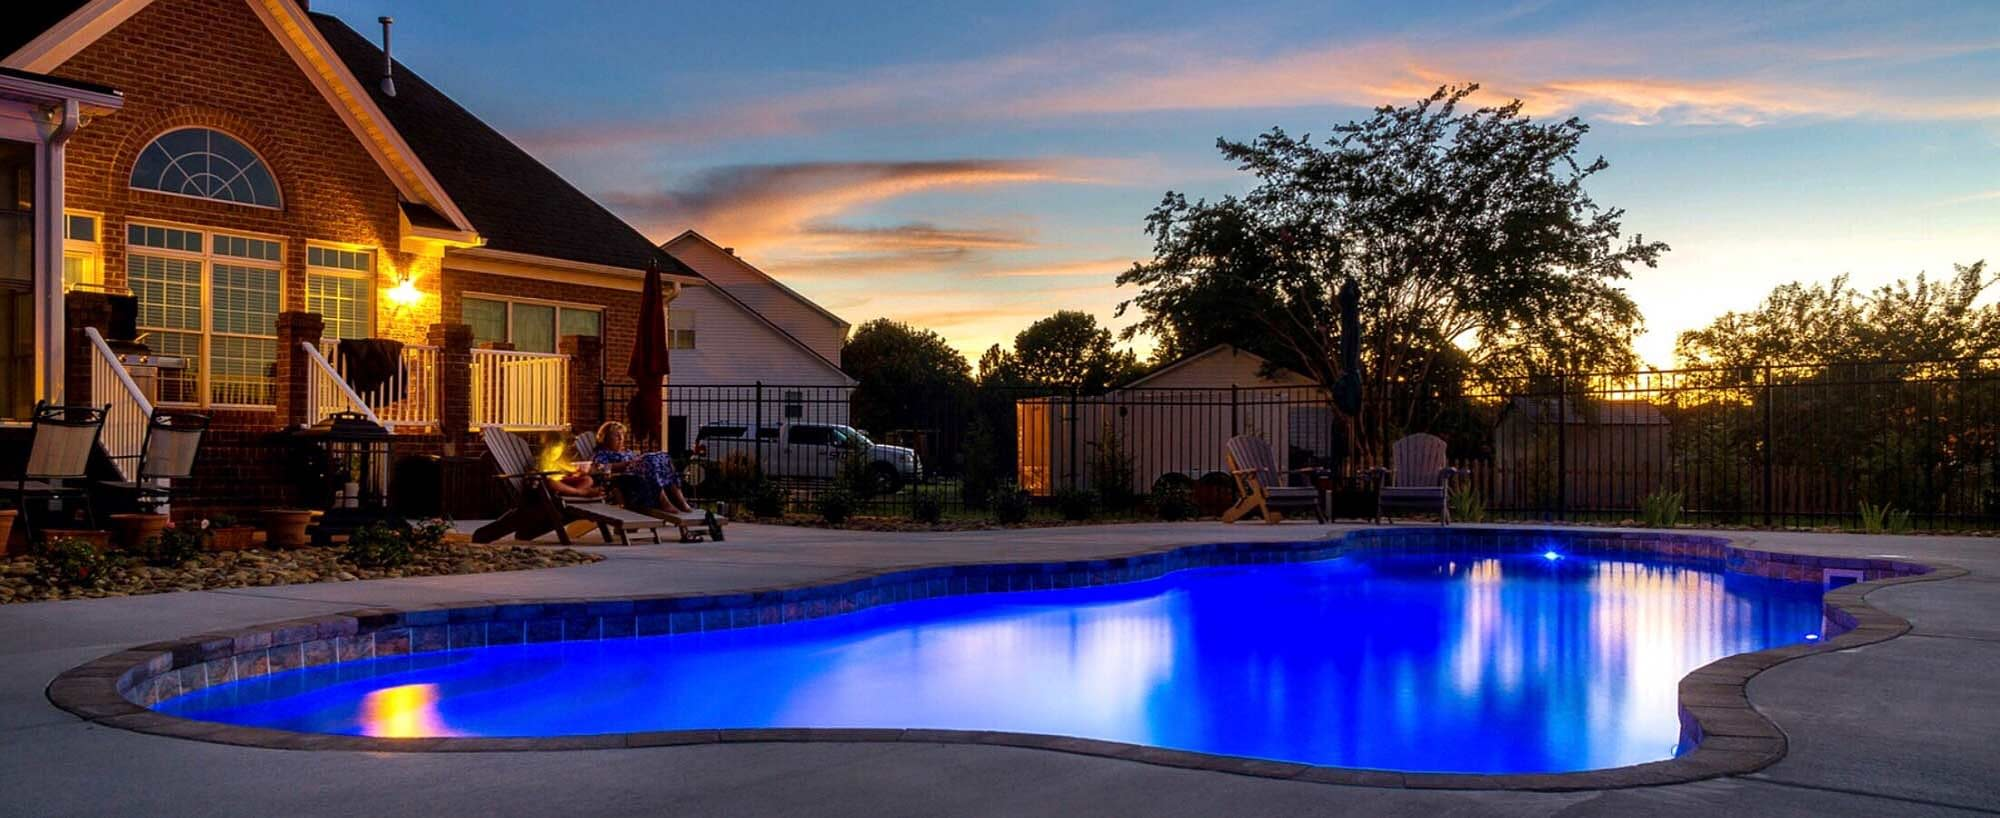 Best Pool Lighting Products and Ideas 1